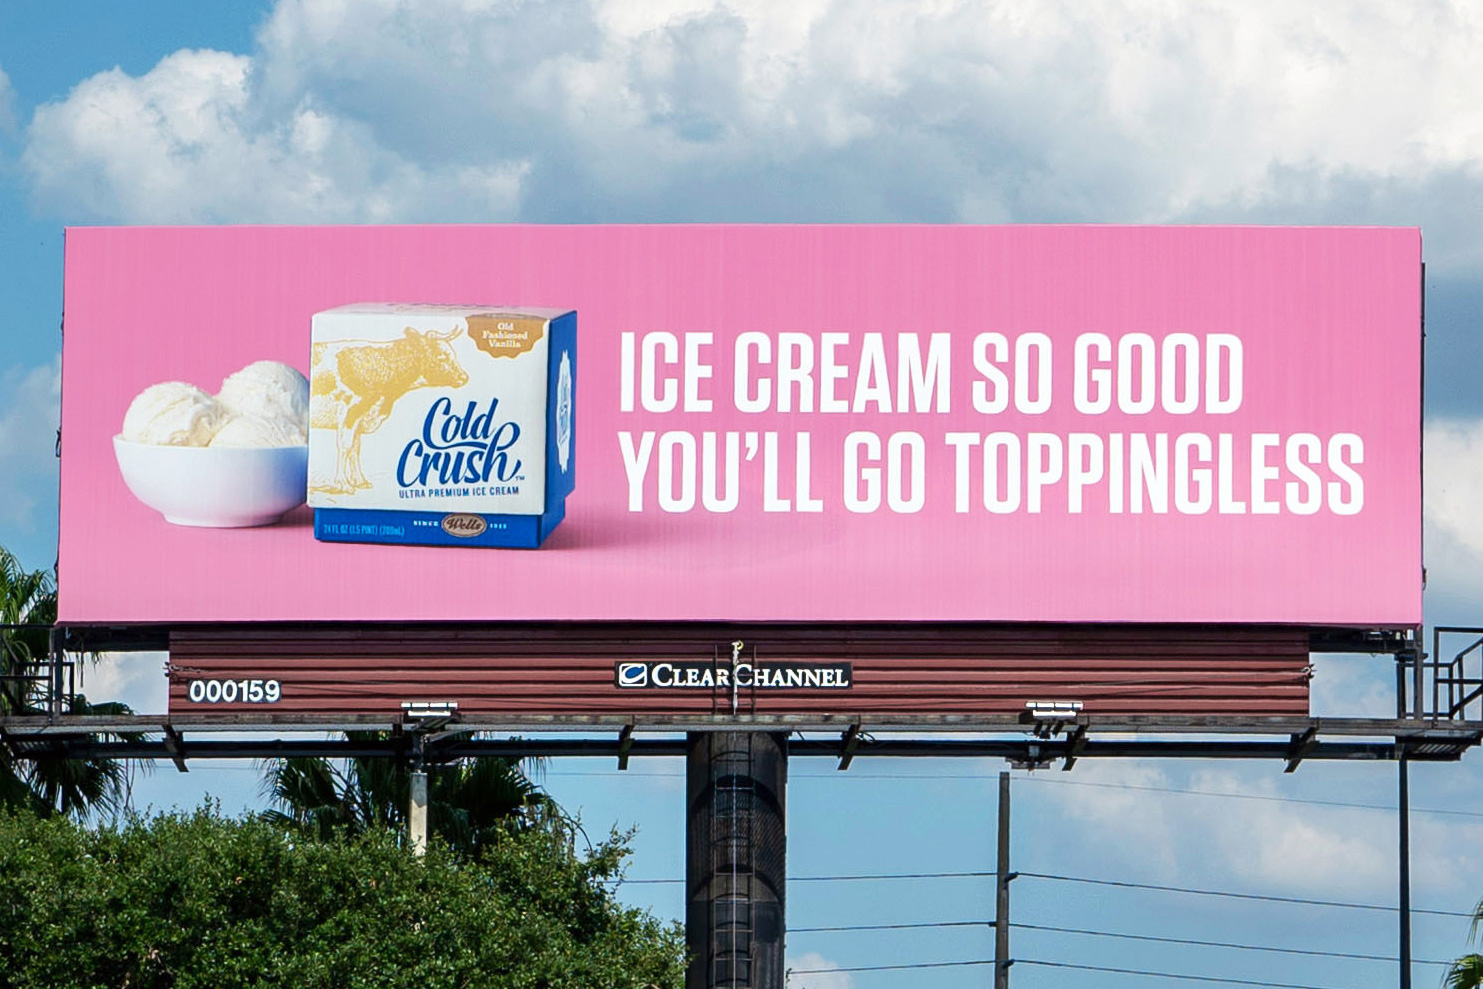 Agency Brief: the calm before the storm and ice cream gone wild